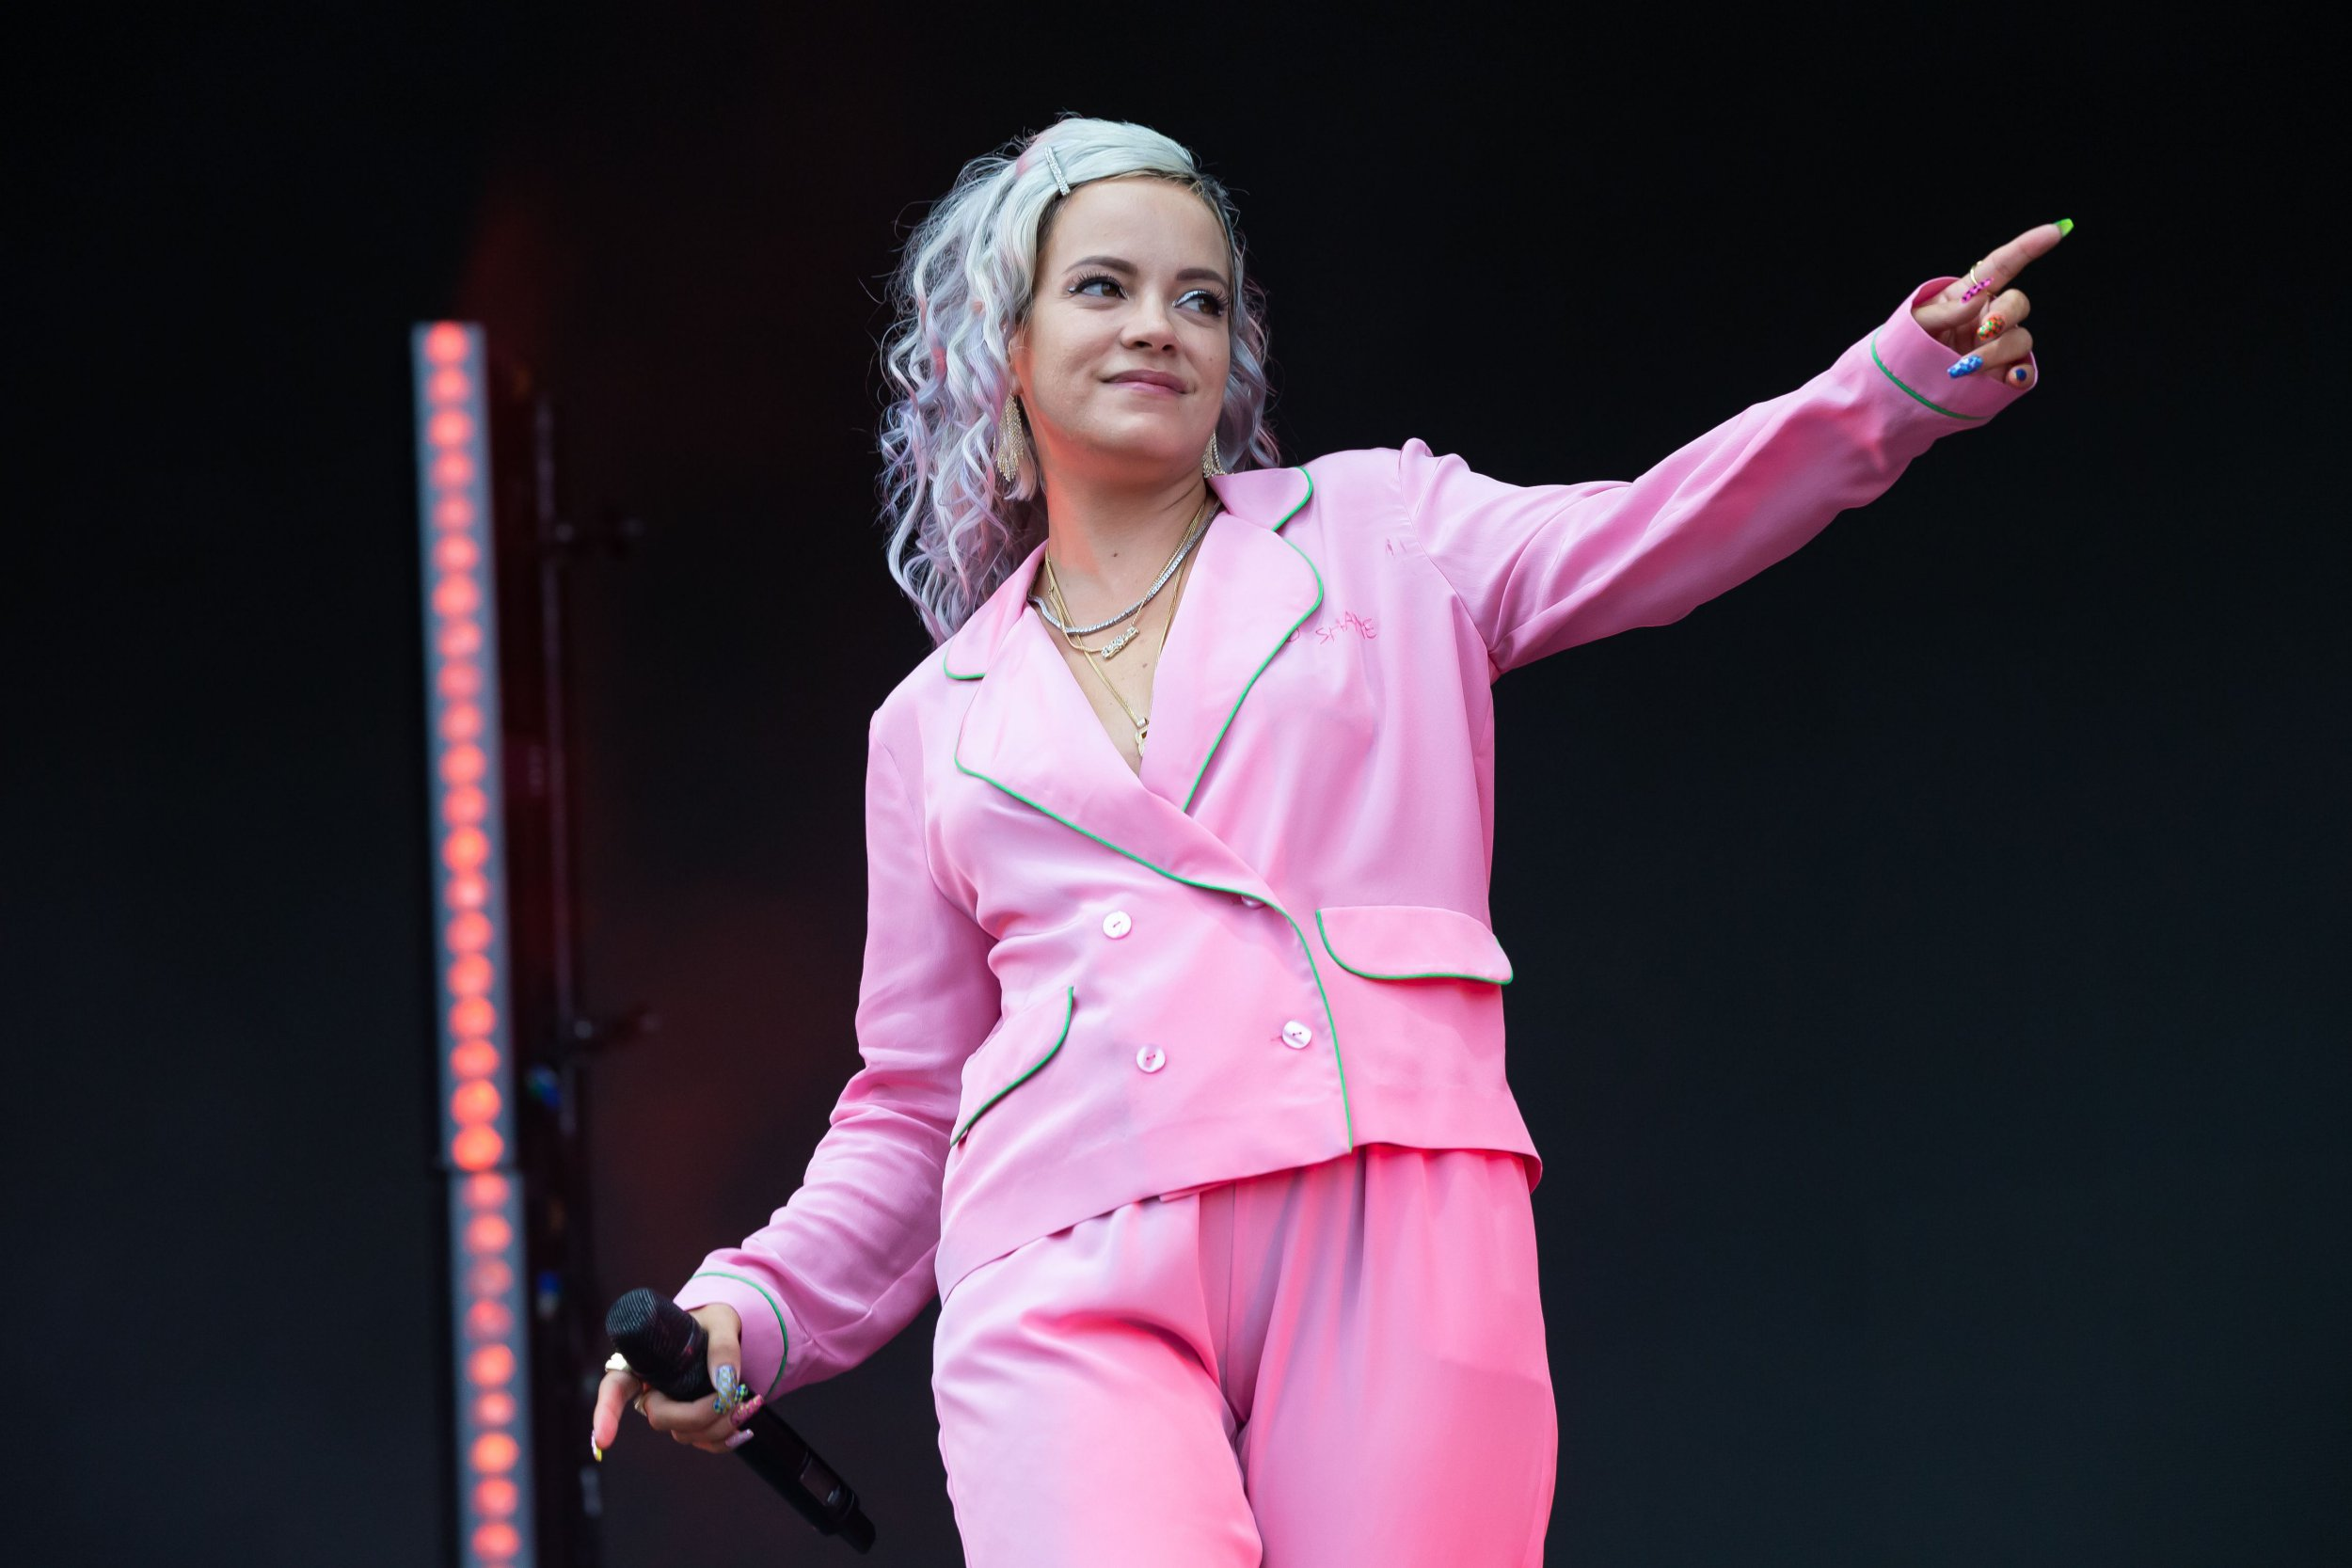 Lily Allen admits she may have got some of the stories in her book wrong